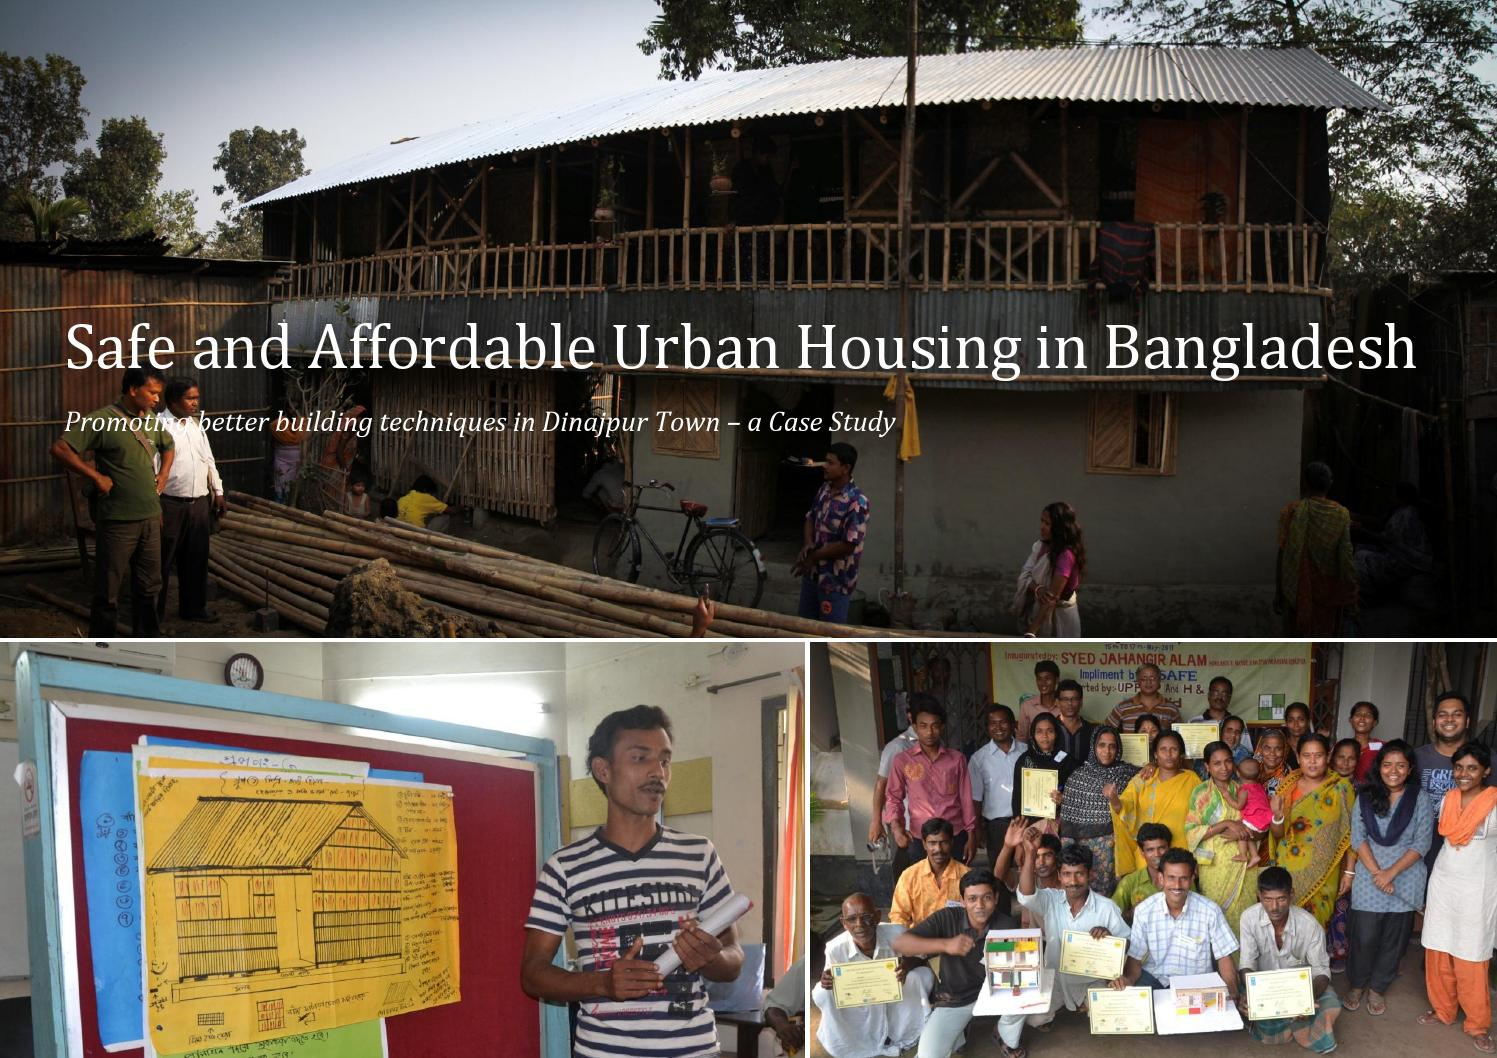 Safe and Affordable Urban Housing in Bangladesh by Simple